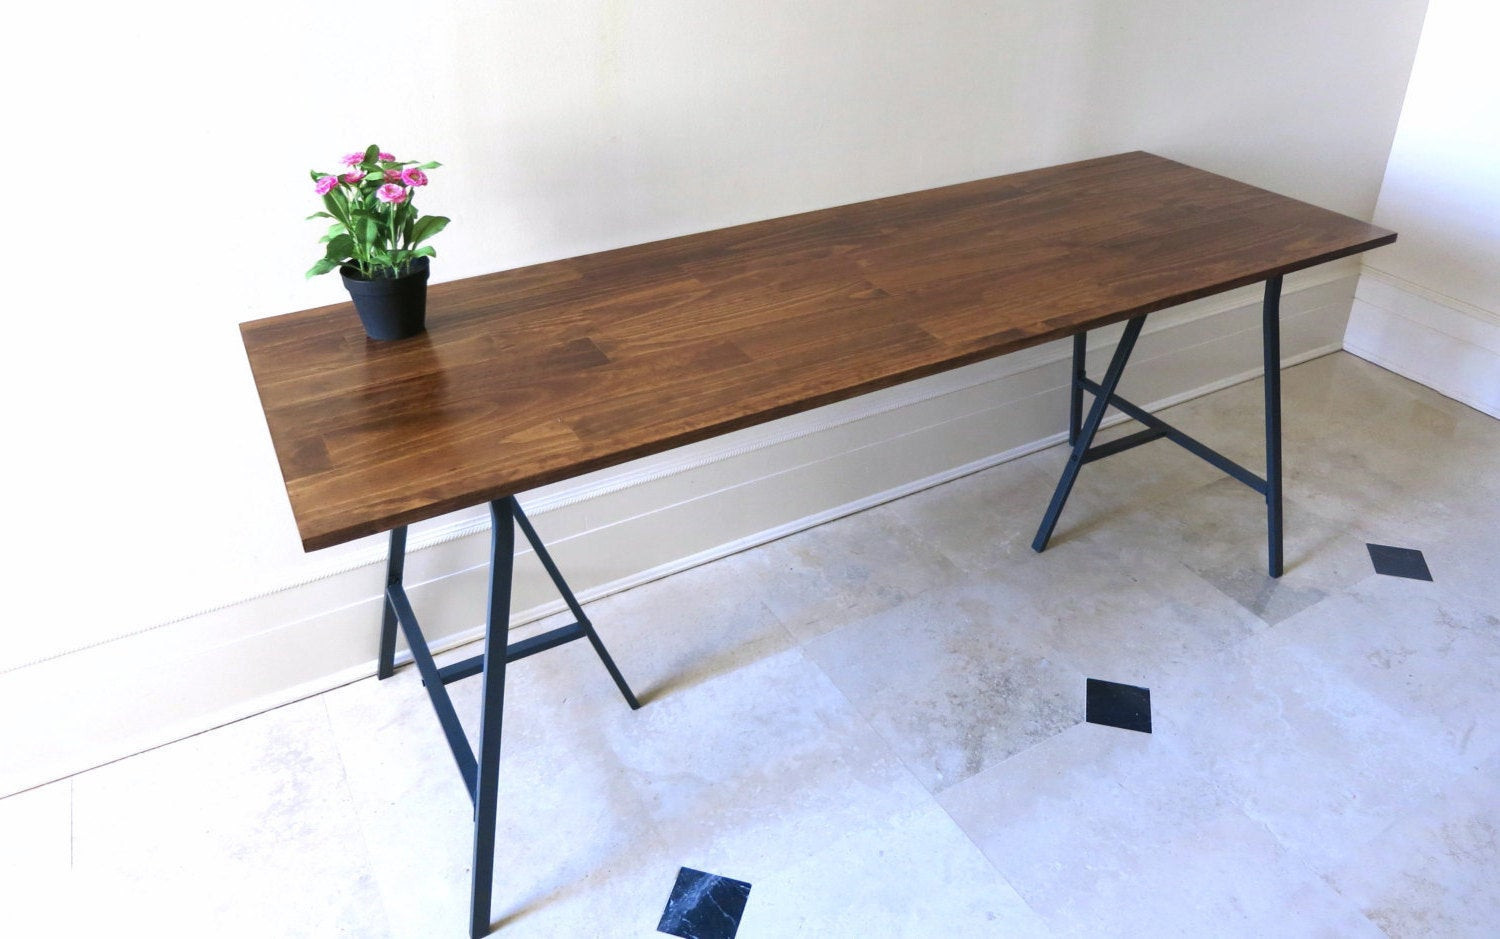 Best ideas about Long Narrow Dining Table . Save or Pin Long Desk or Narrow Dining Table Long Table by goldenrulenyc Now.